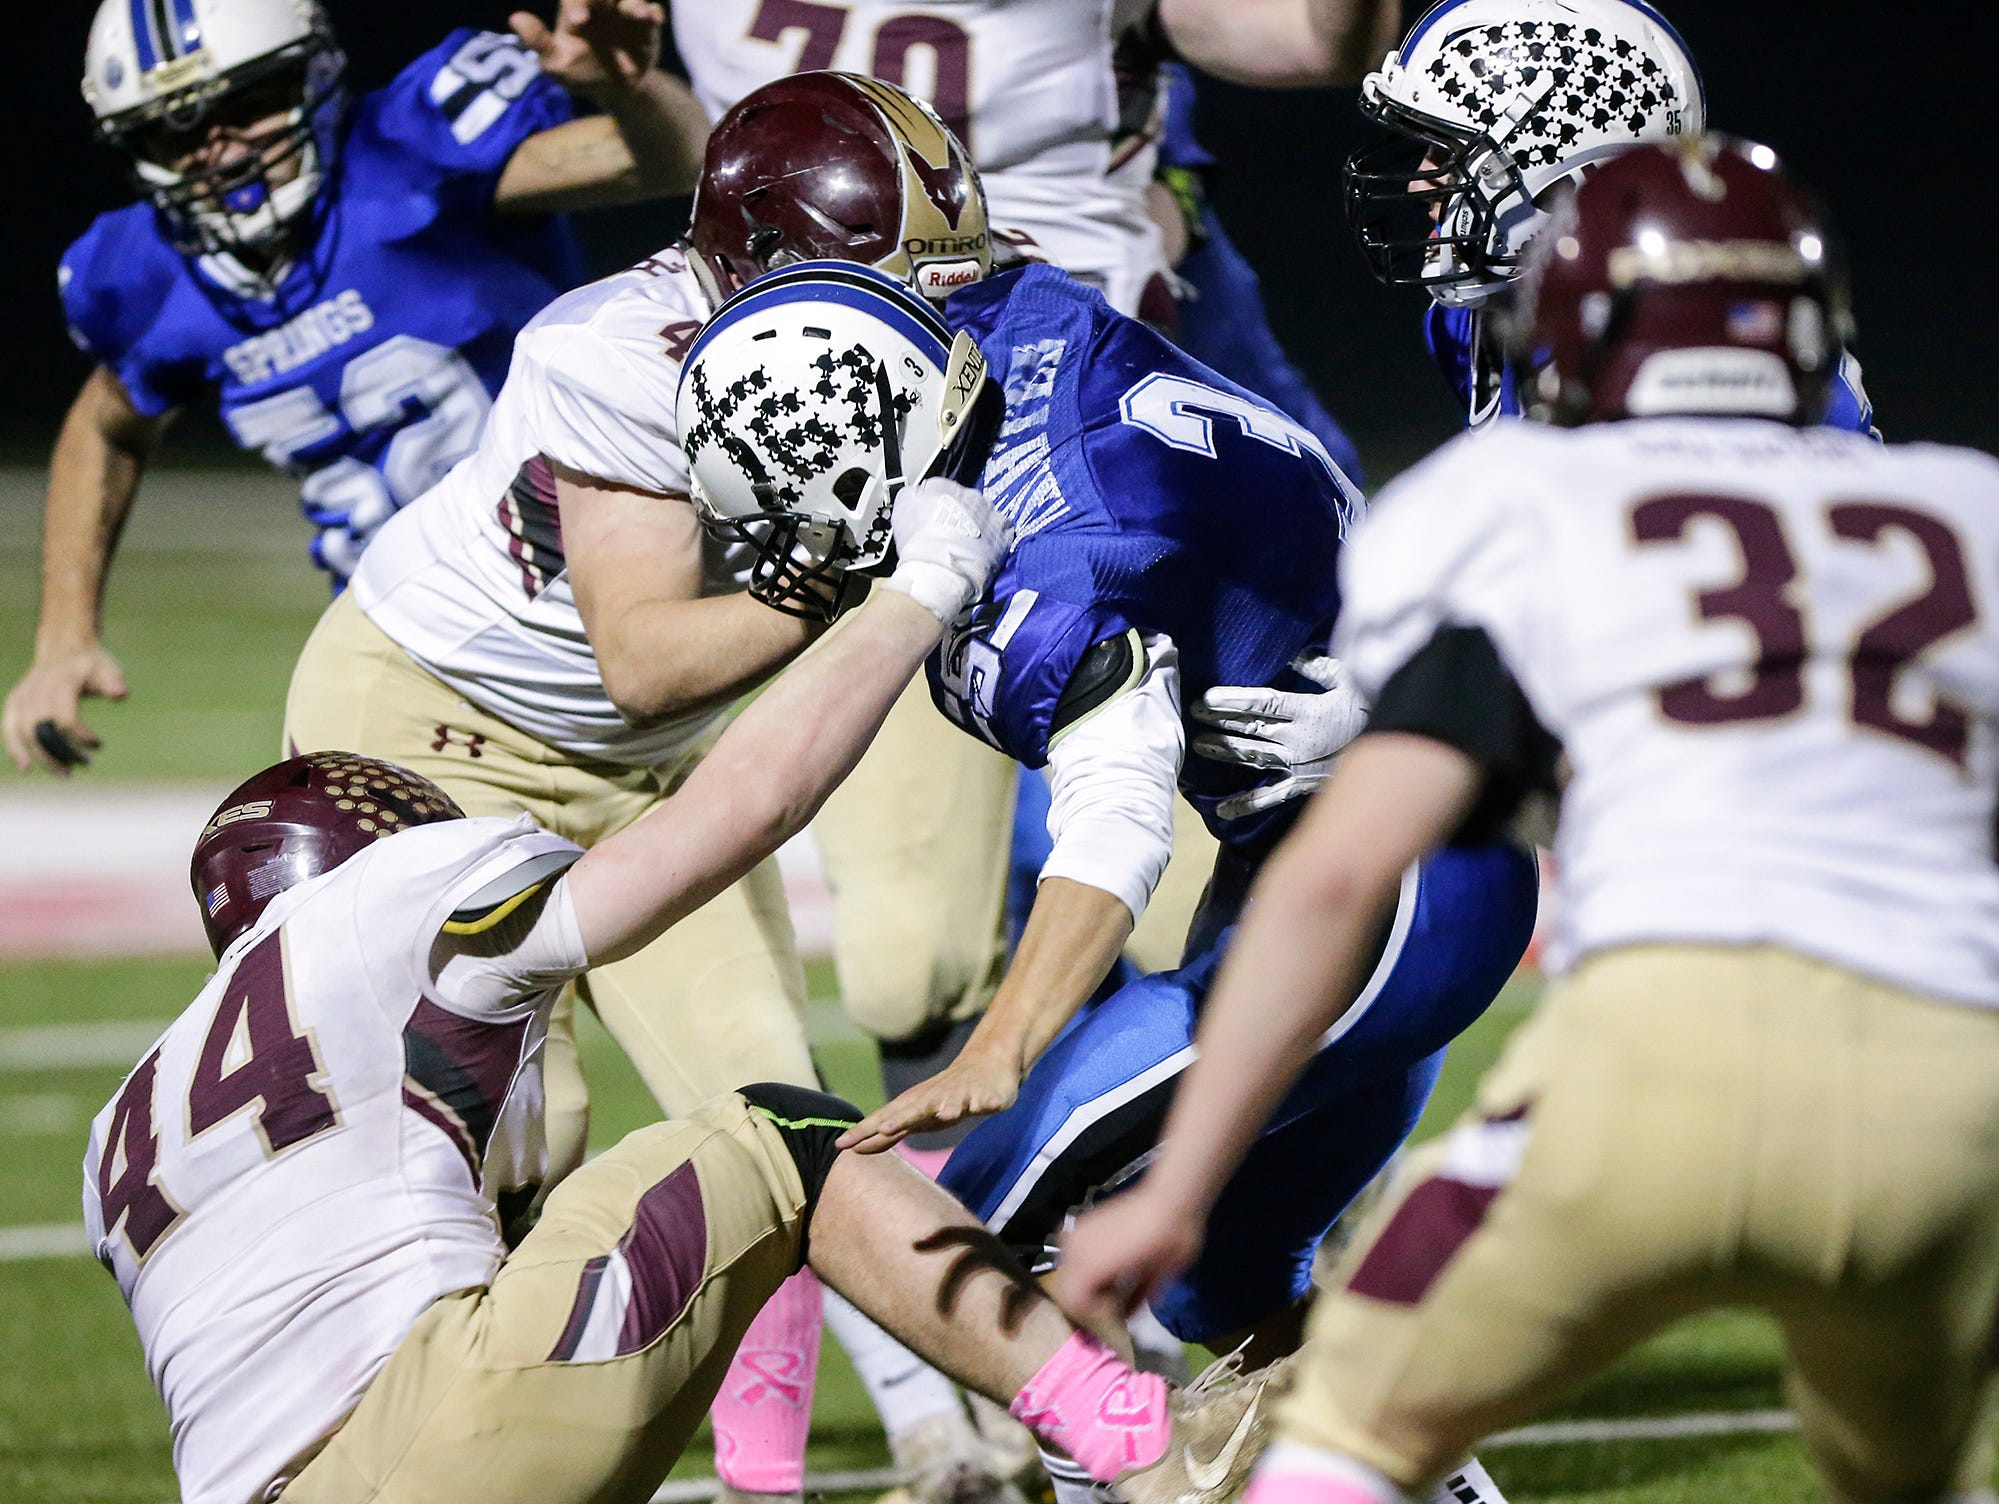 St. Mary's Springs Academy football's Mitchell Waechter gets tackled by Omro High School's Zac Boese (44) and Clayton Markech (42) Friday, October 26, 2018 during their WIAA division five, level 2 playoff game played in Lomira, Wisconsin. Springs won the match-up 33-20. Doug Raflik/USA TODAY NETWORK-Wisconsin